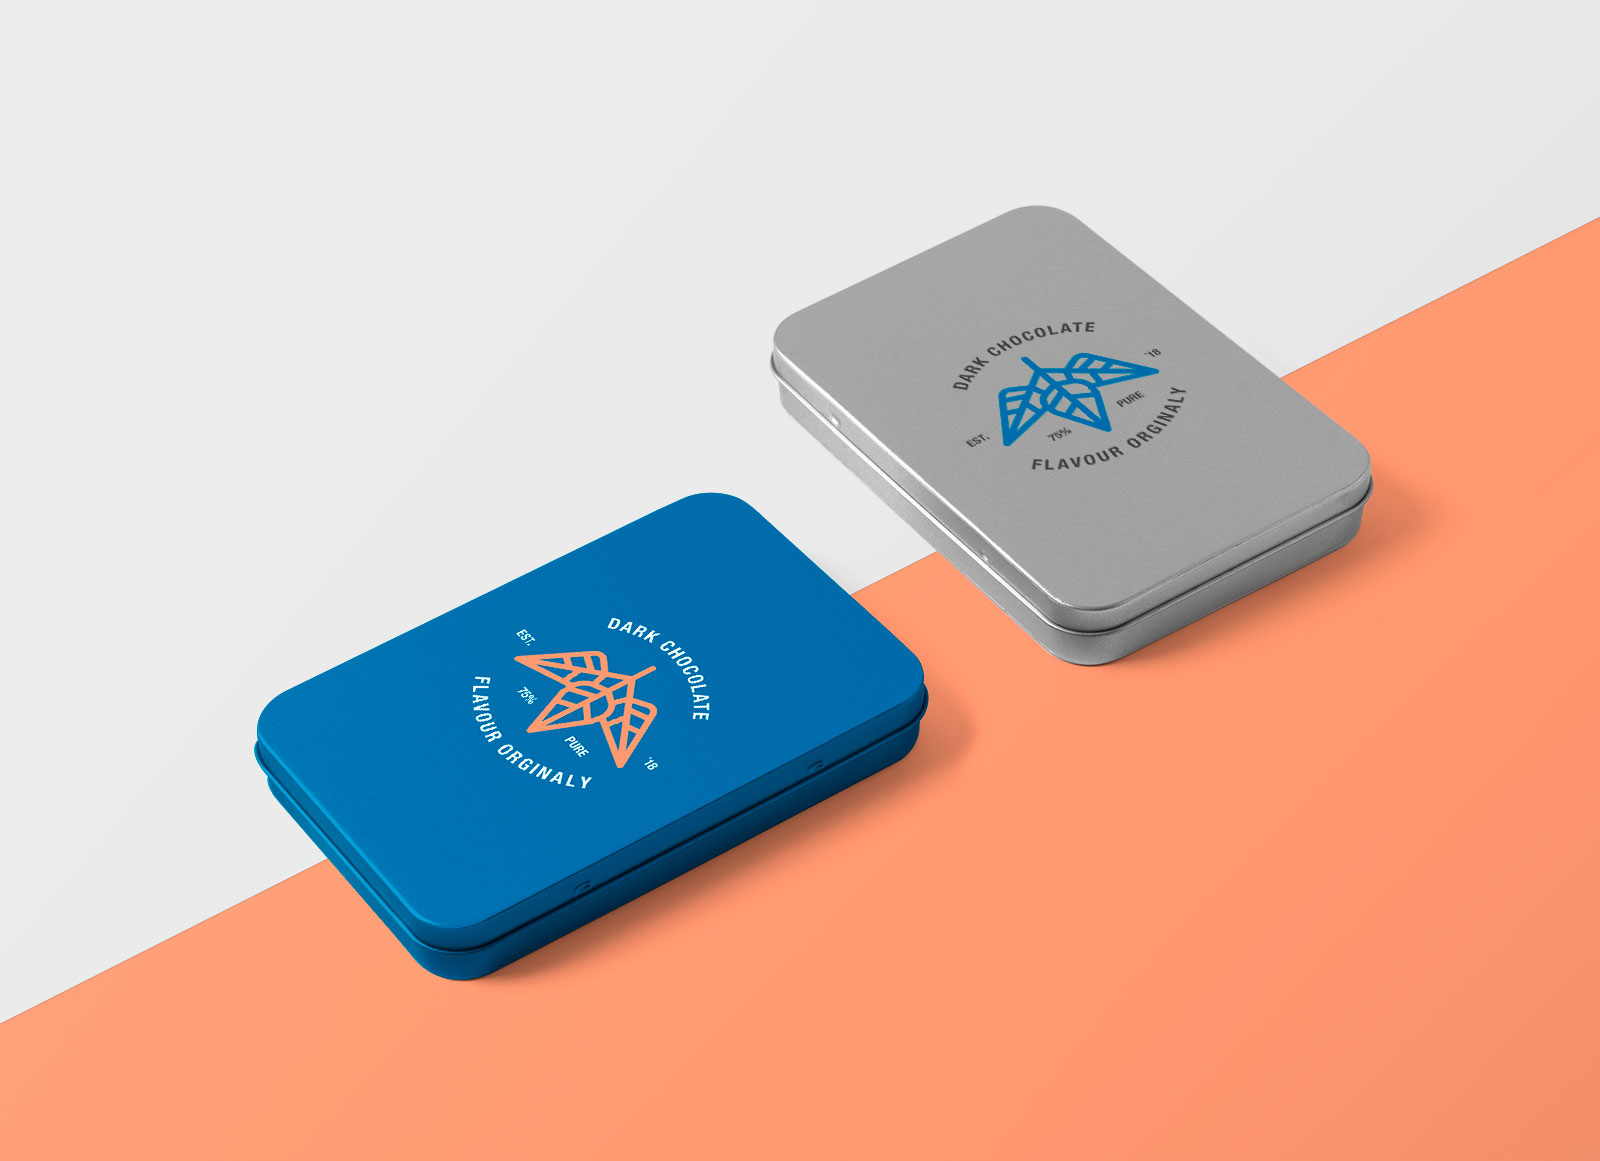 Free-Rounded-Rectangle-Metal-Box-Mockup-PSD